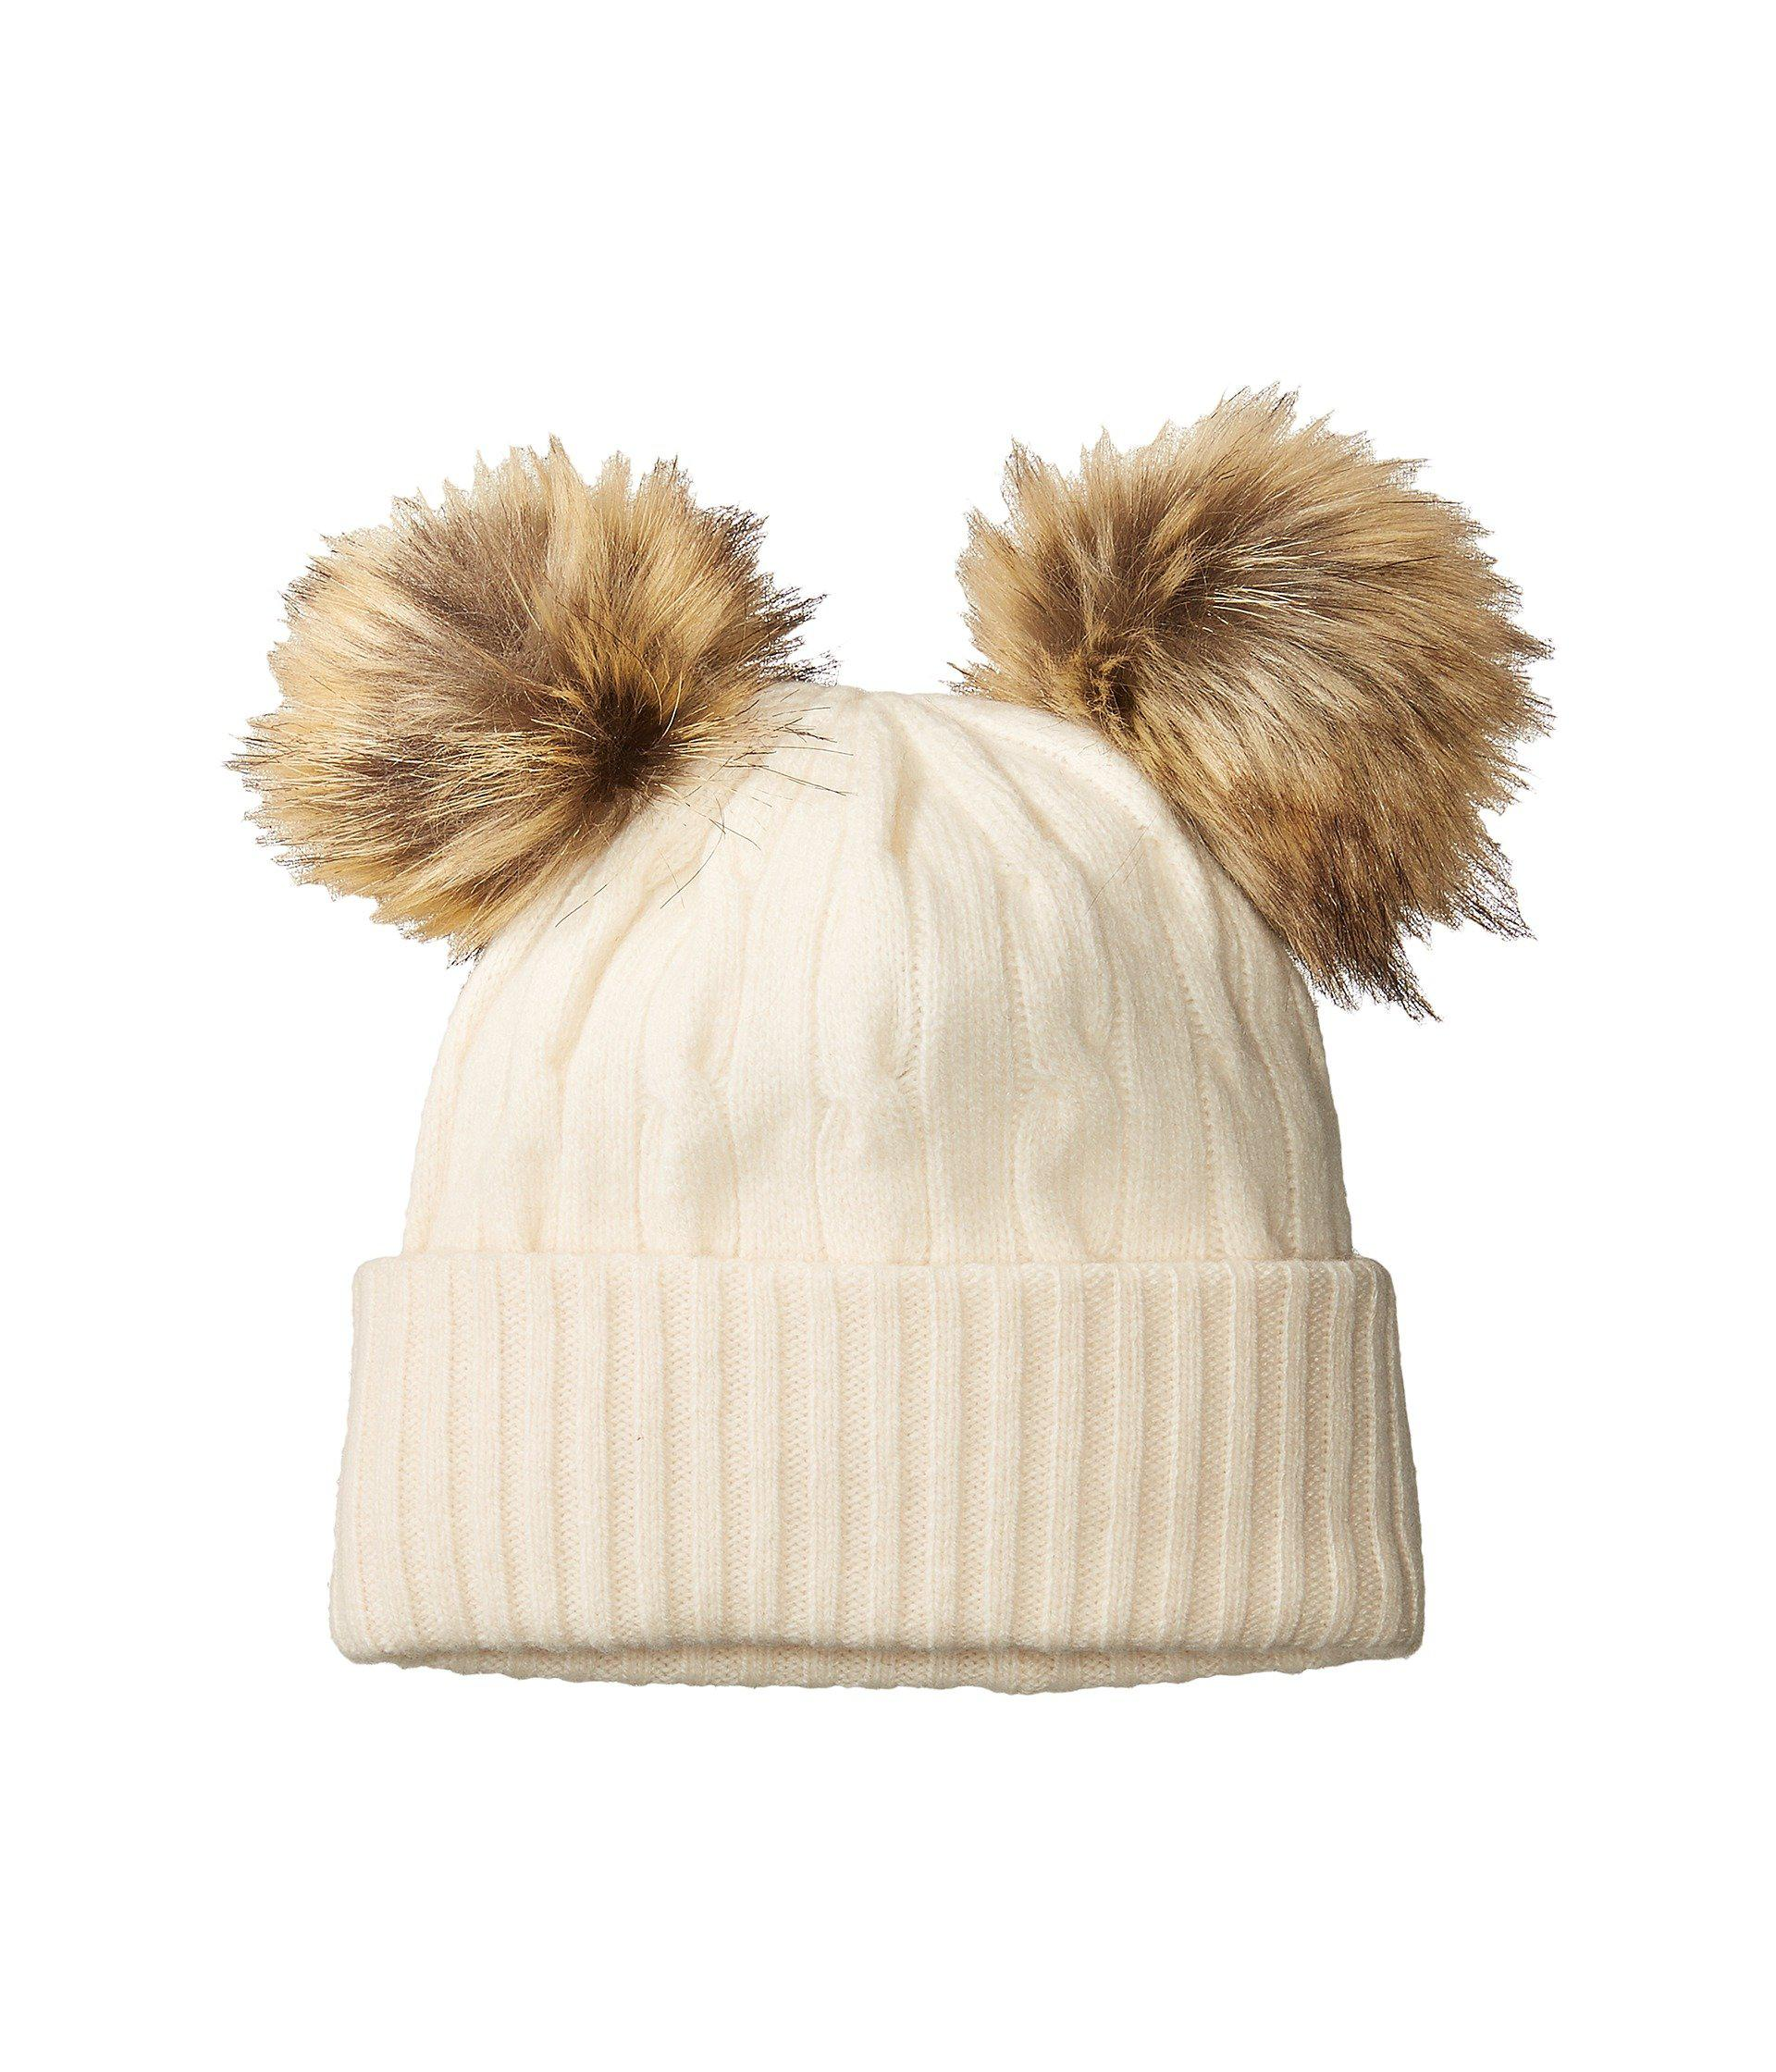 88a2af64402185 Polo Ralph Lauren Double Pom Cashmere Blend Hat in Natural - Lyst